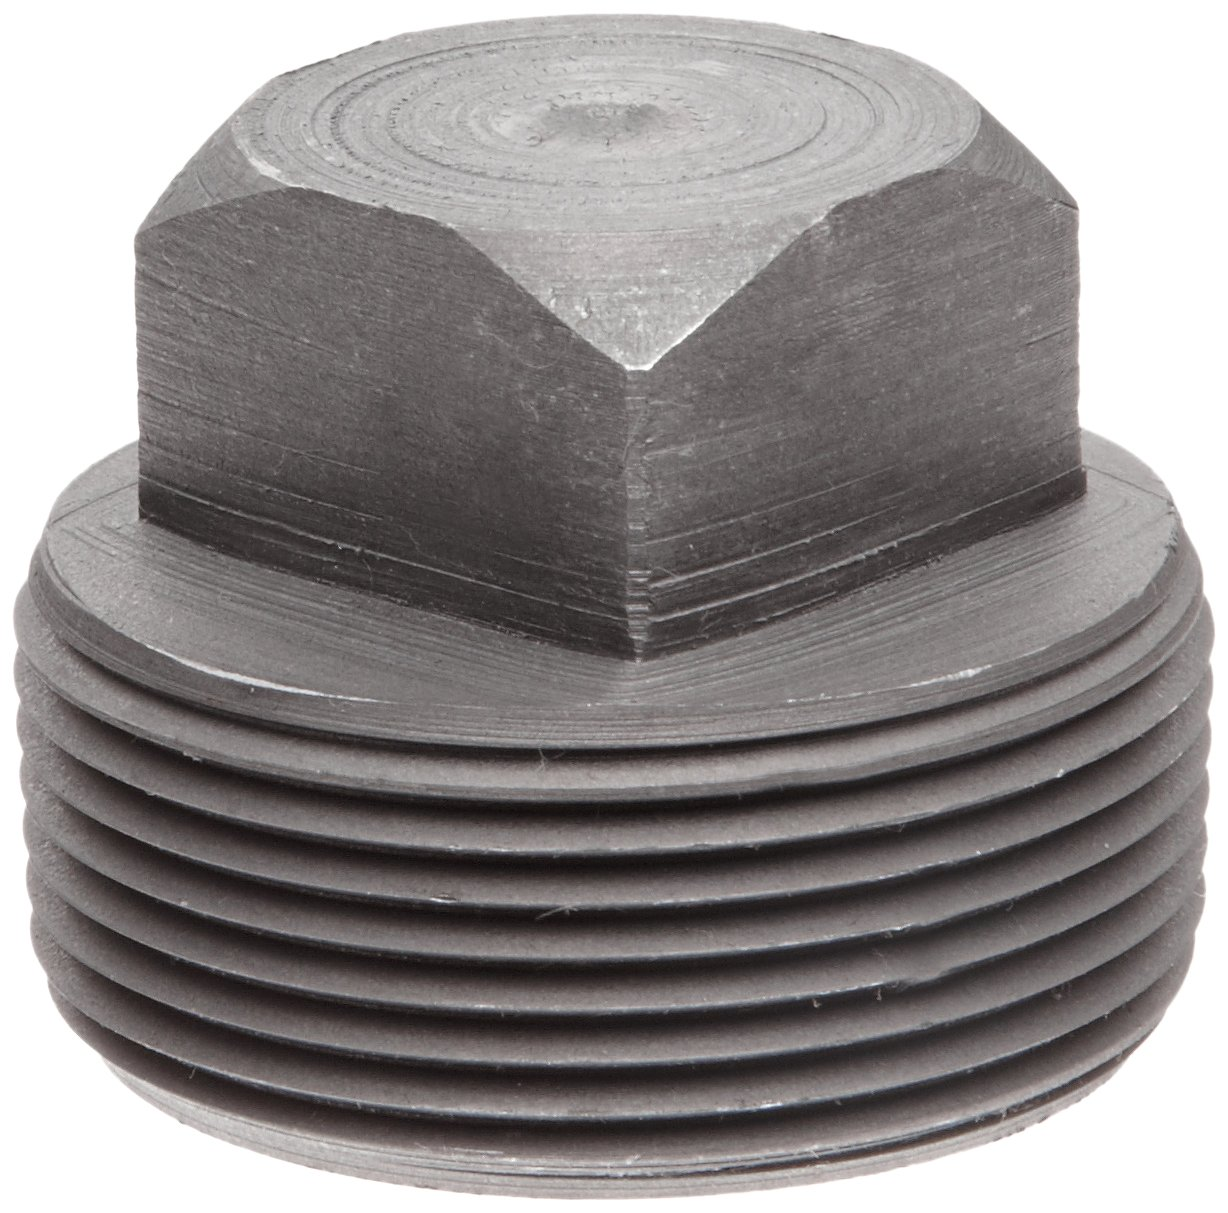 Square Head Plug Anvil 2122 Forged Steel High Pressure Pipe Fitting 1//4 NPT Male Class 6000